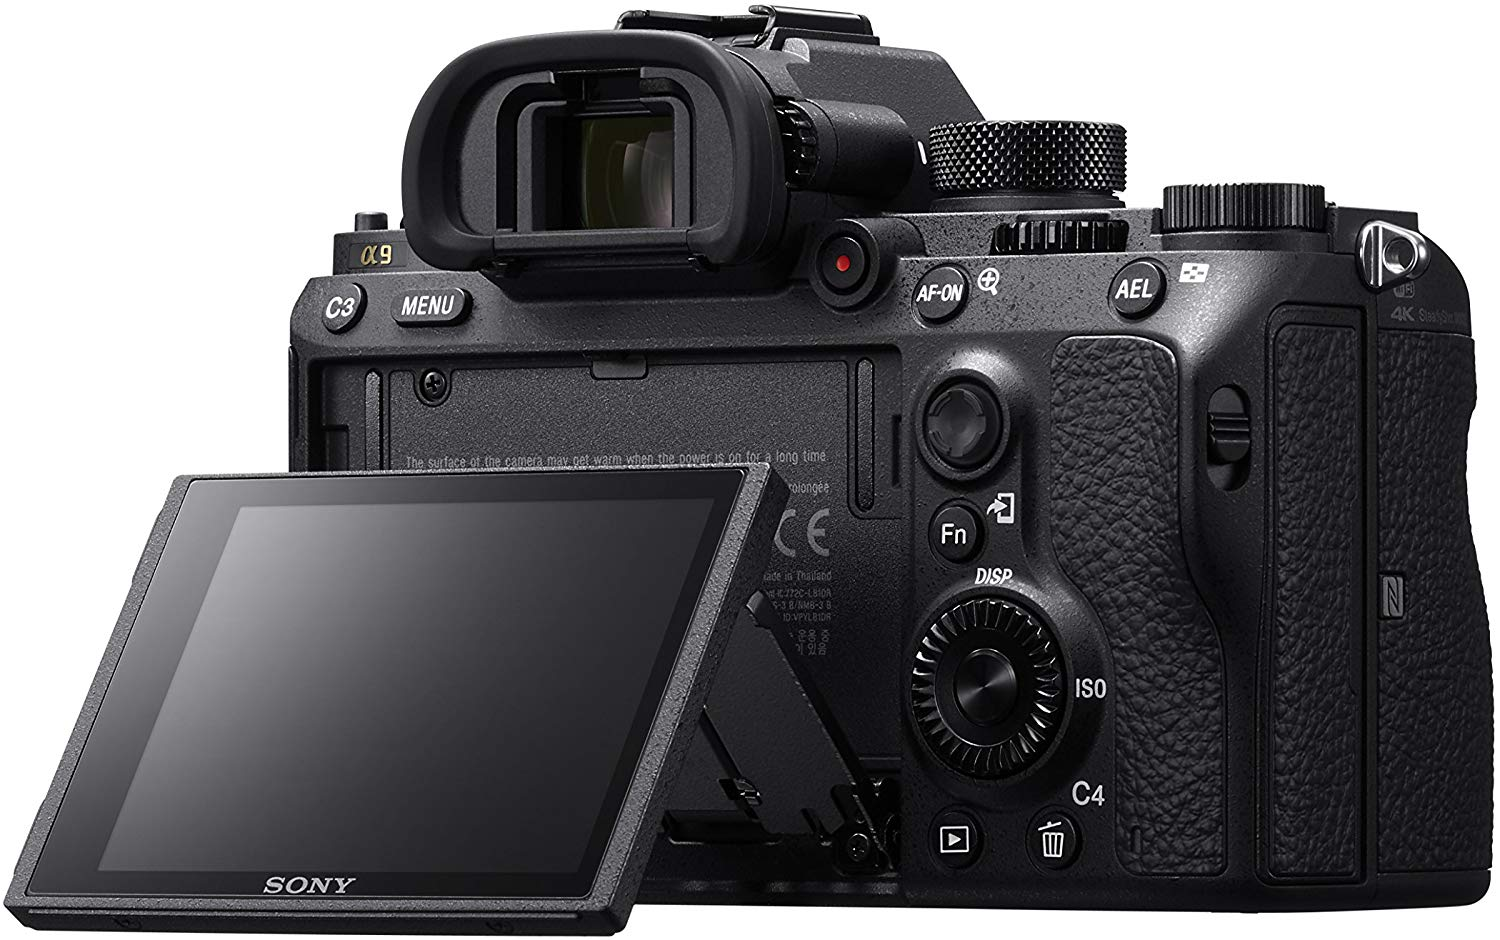 Nikon Z7 vs Sony a9 Body and Design 1 image